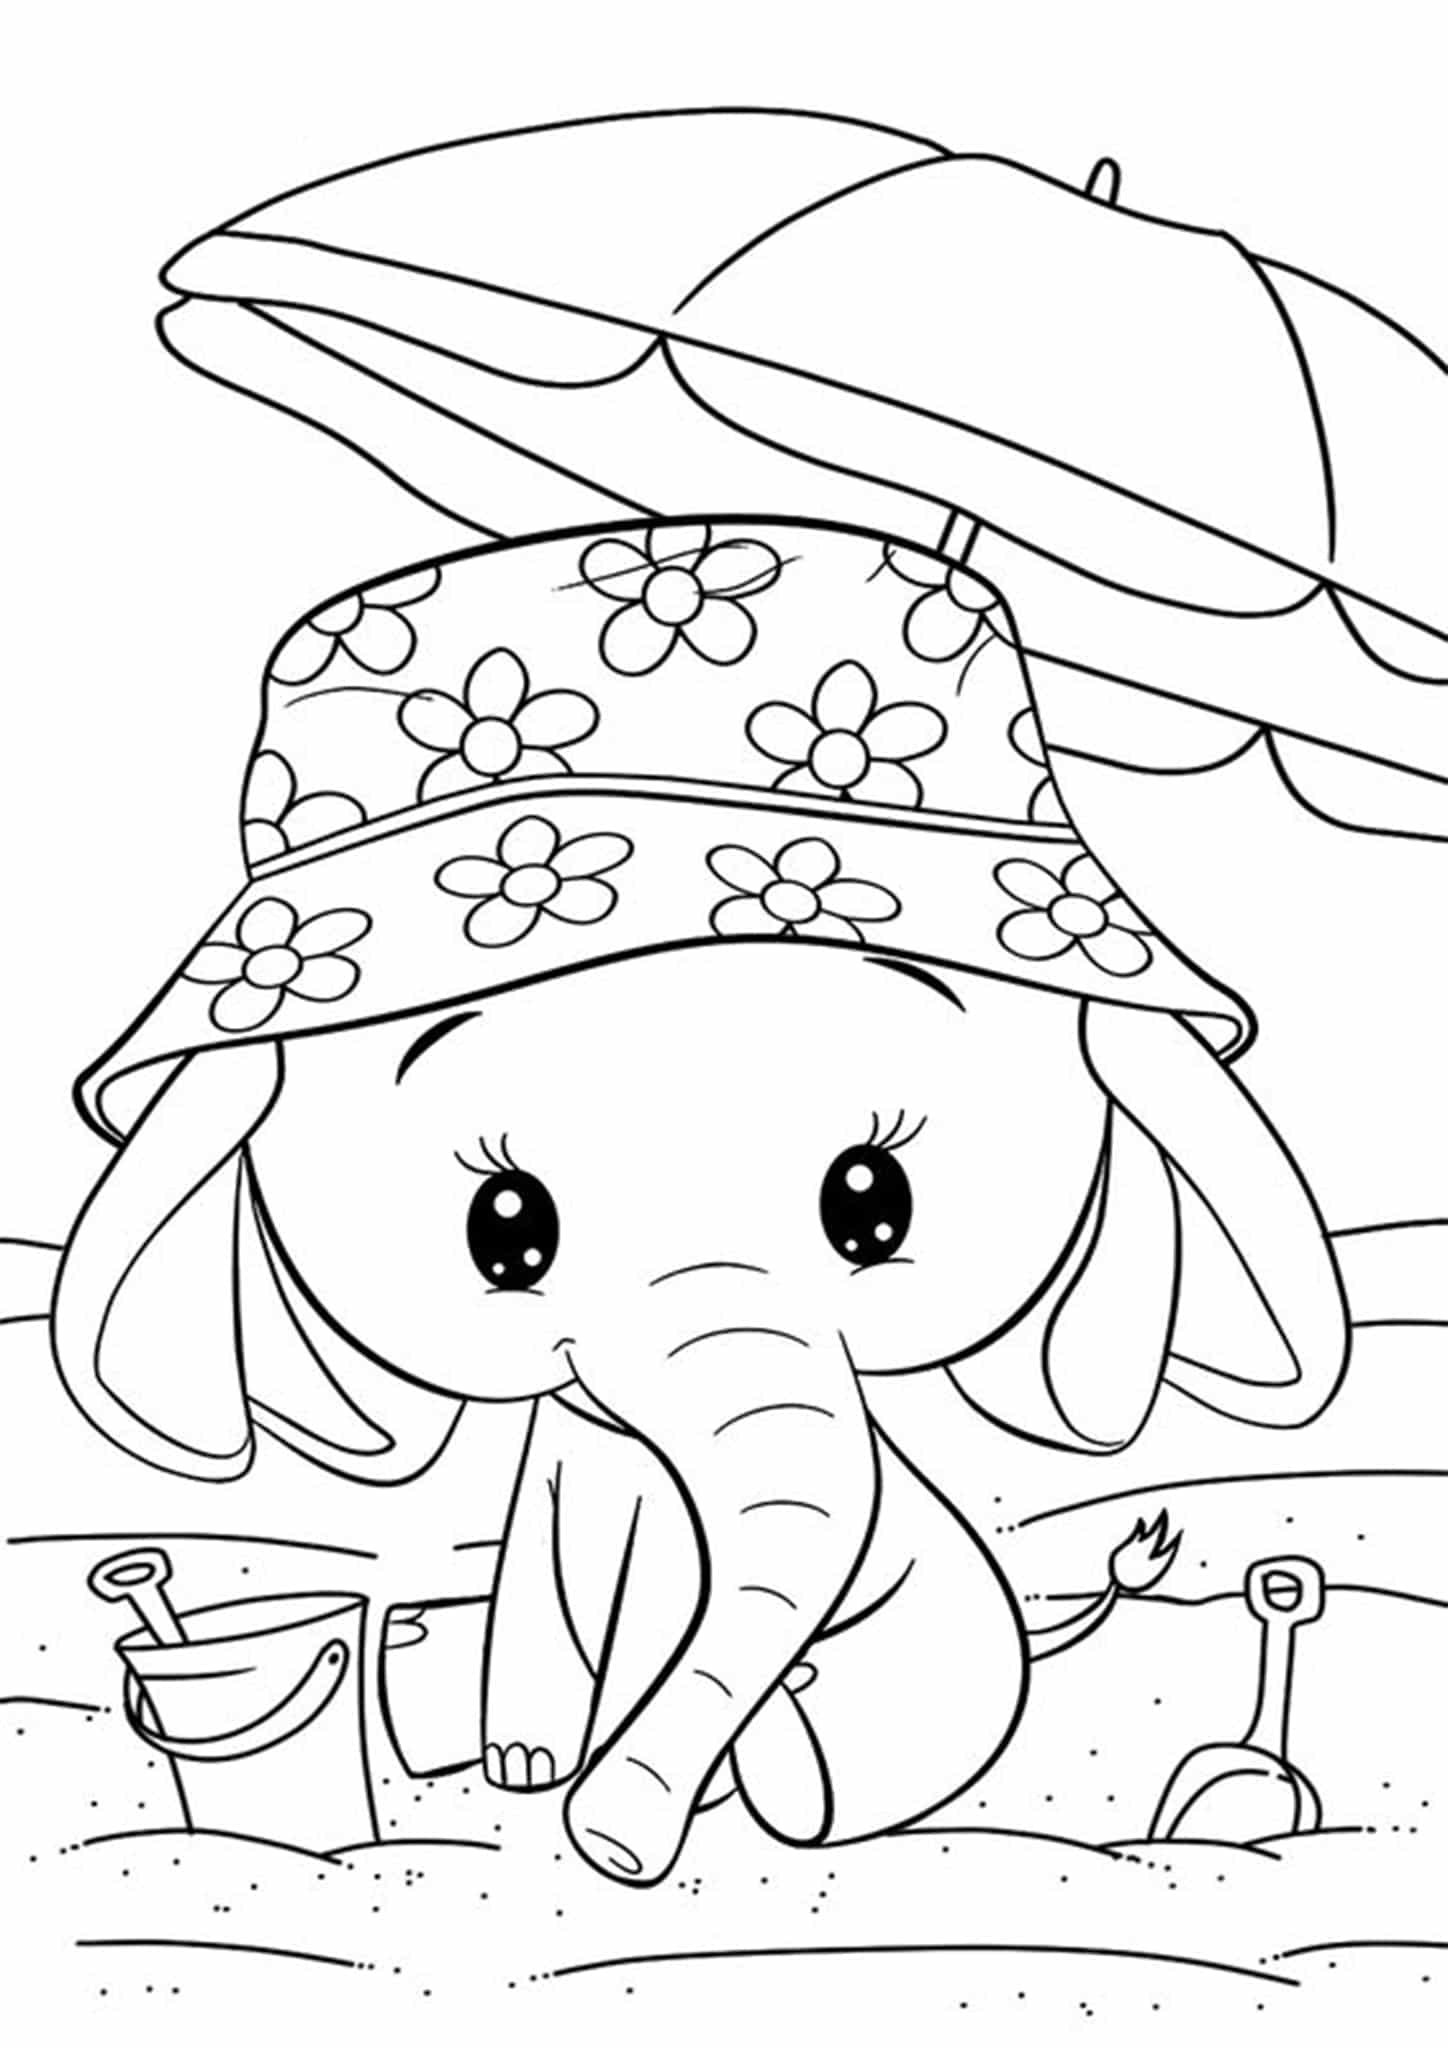 colouring pages of elephant print download teaching kids through elephant coloring pages elephant of colouring